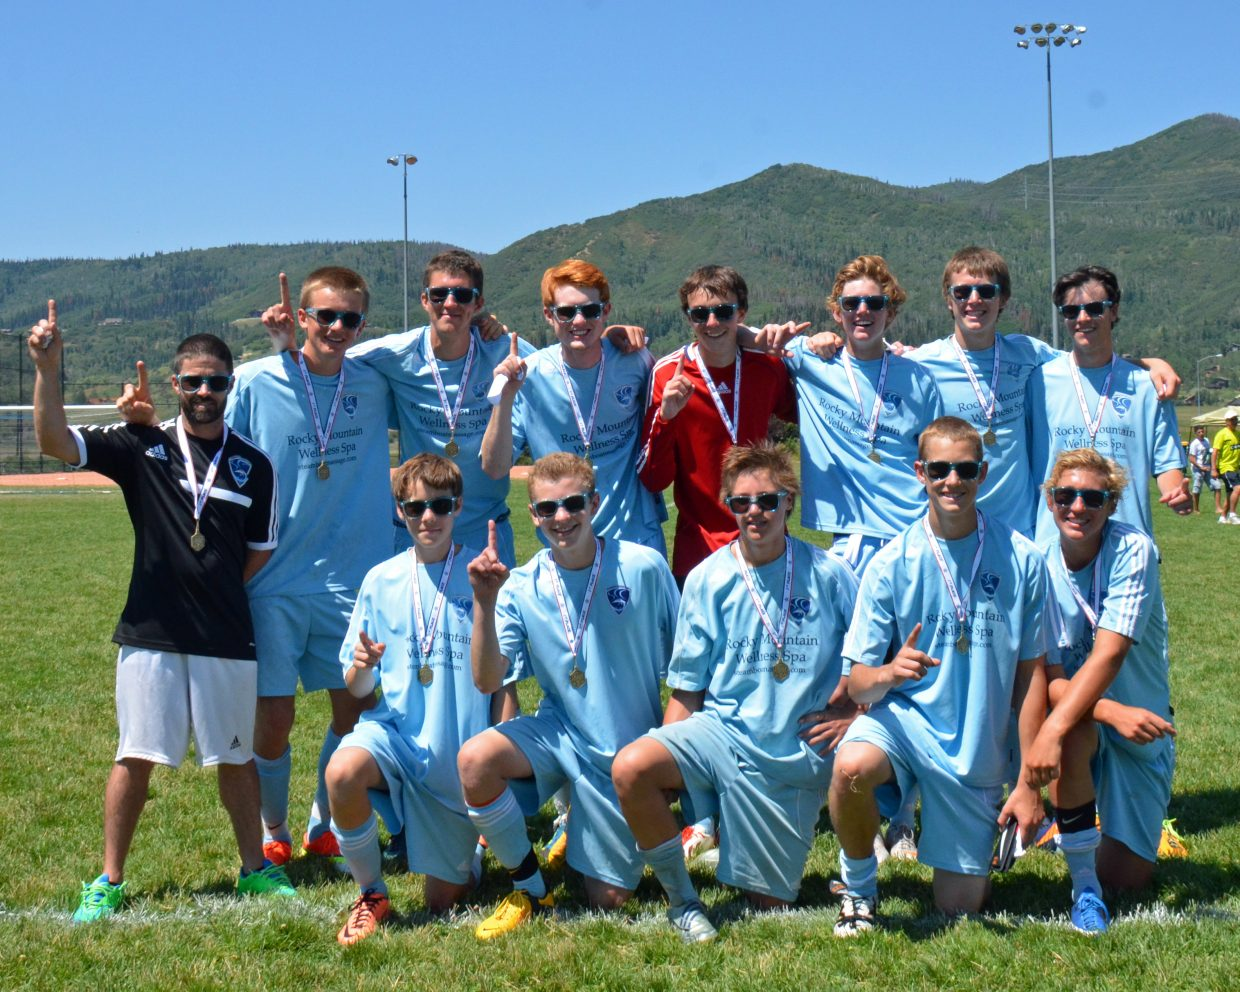 The Steamboat U18 Boys win their age group in the Steamboat Mountain Soccer Tournament after two overtime periods and a shoot-out. 125 teams played in the tournament. Submitted by: Jan DePuy